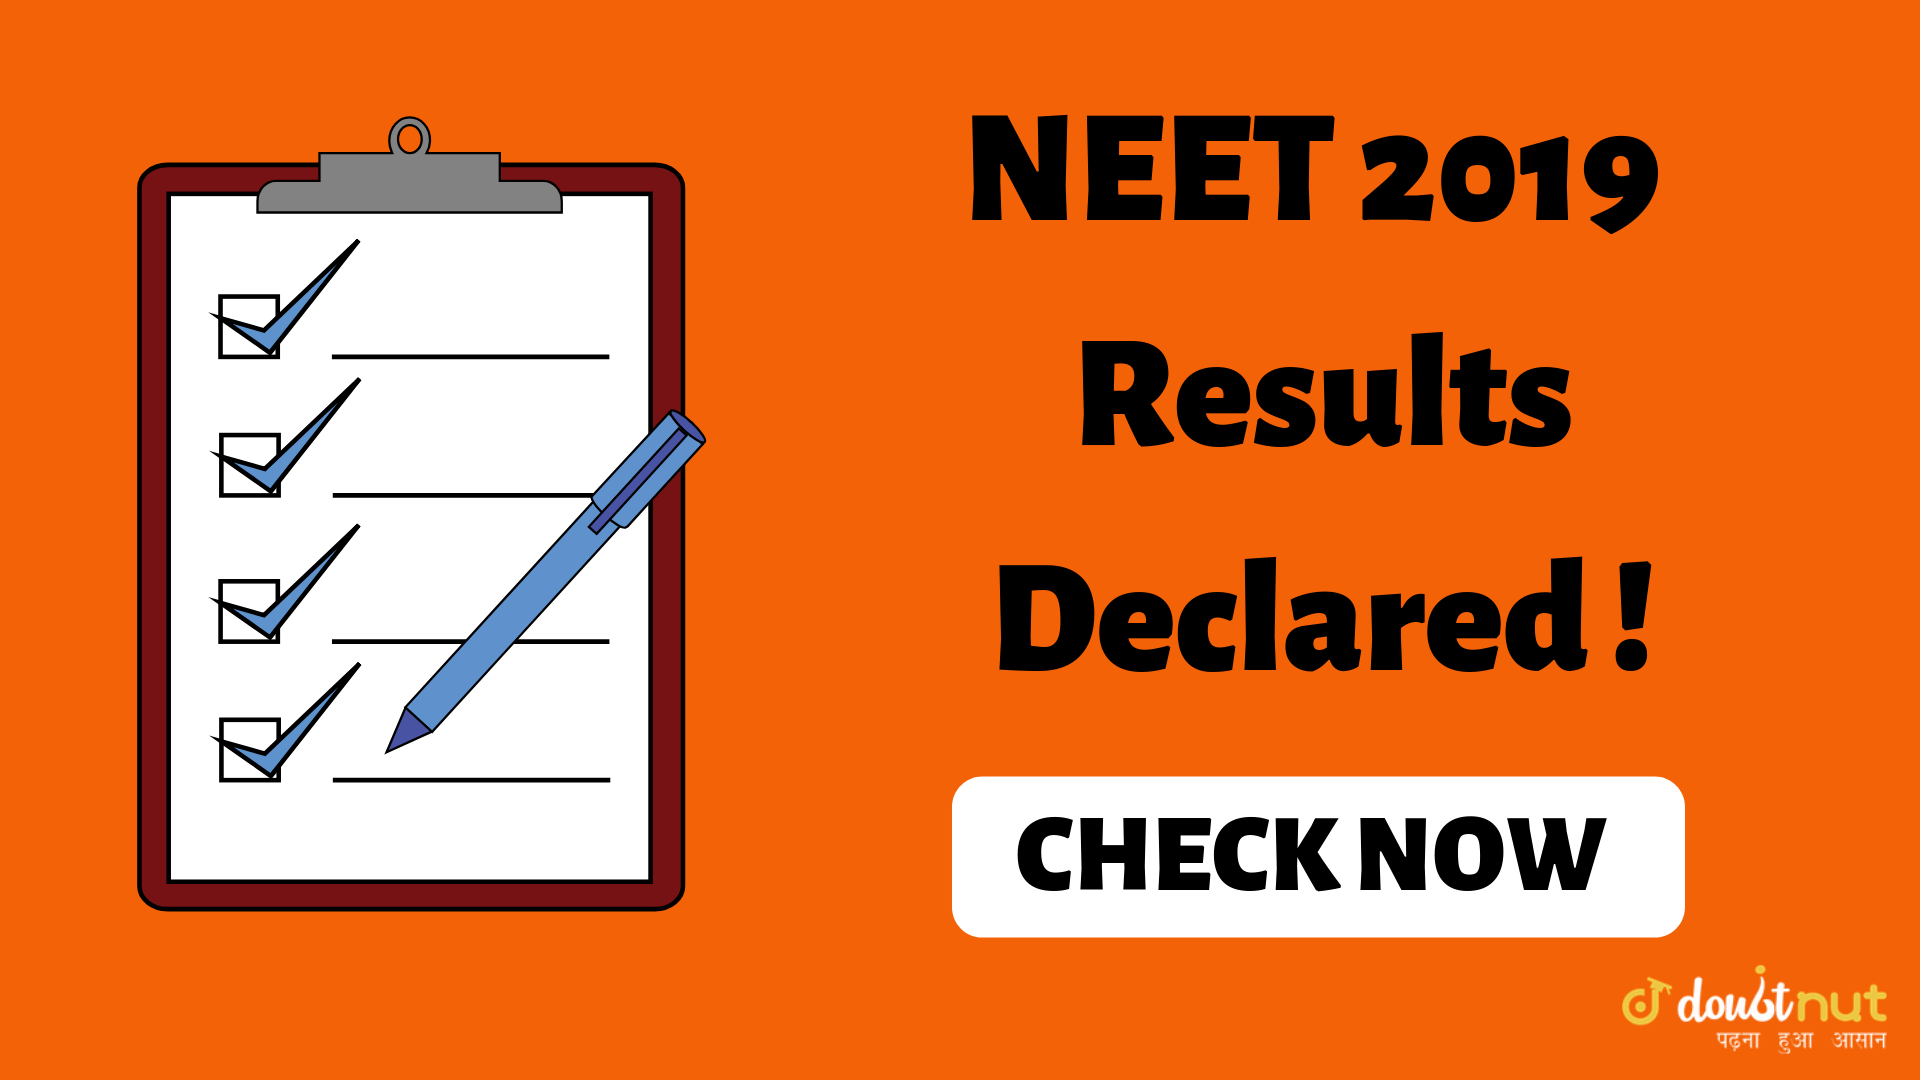 NEET 2019 Result Out Check here